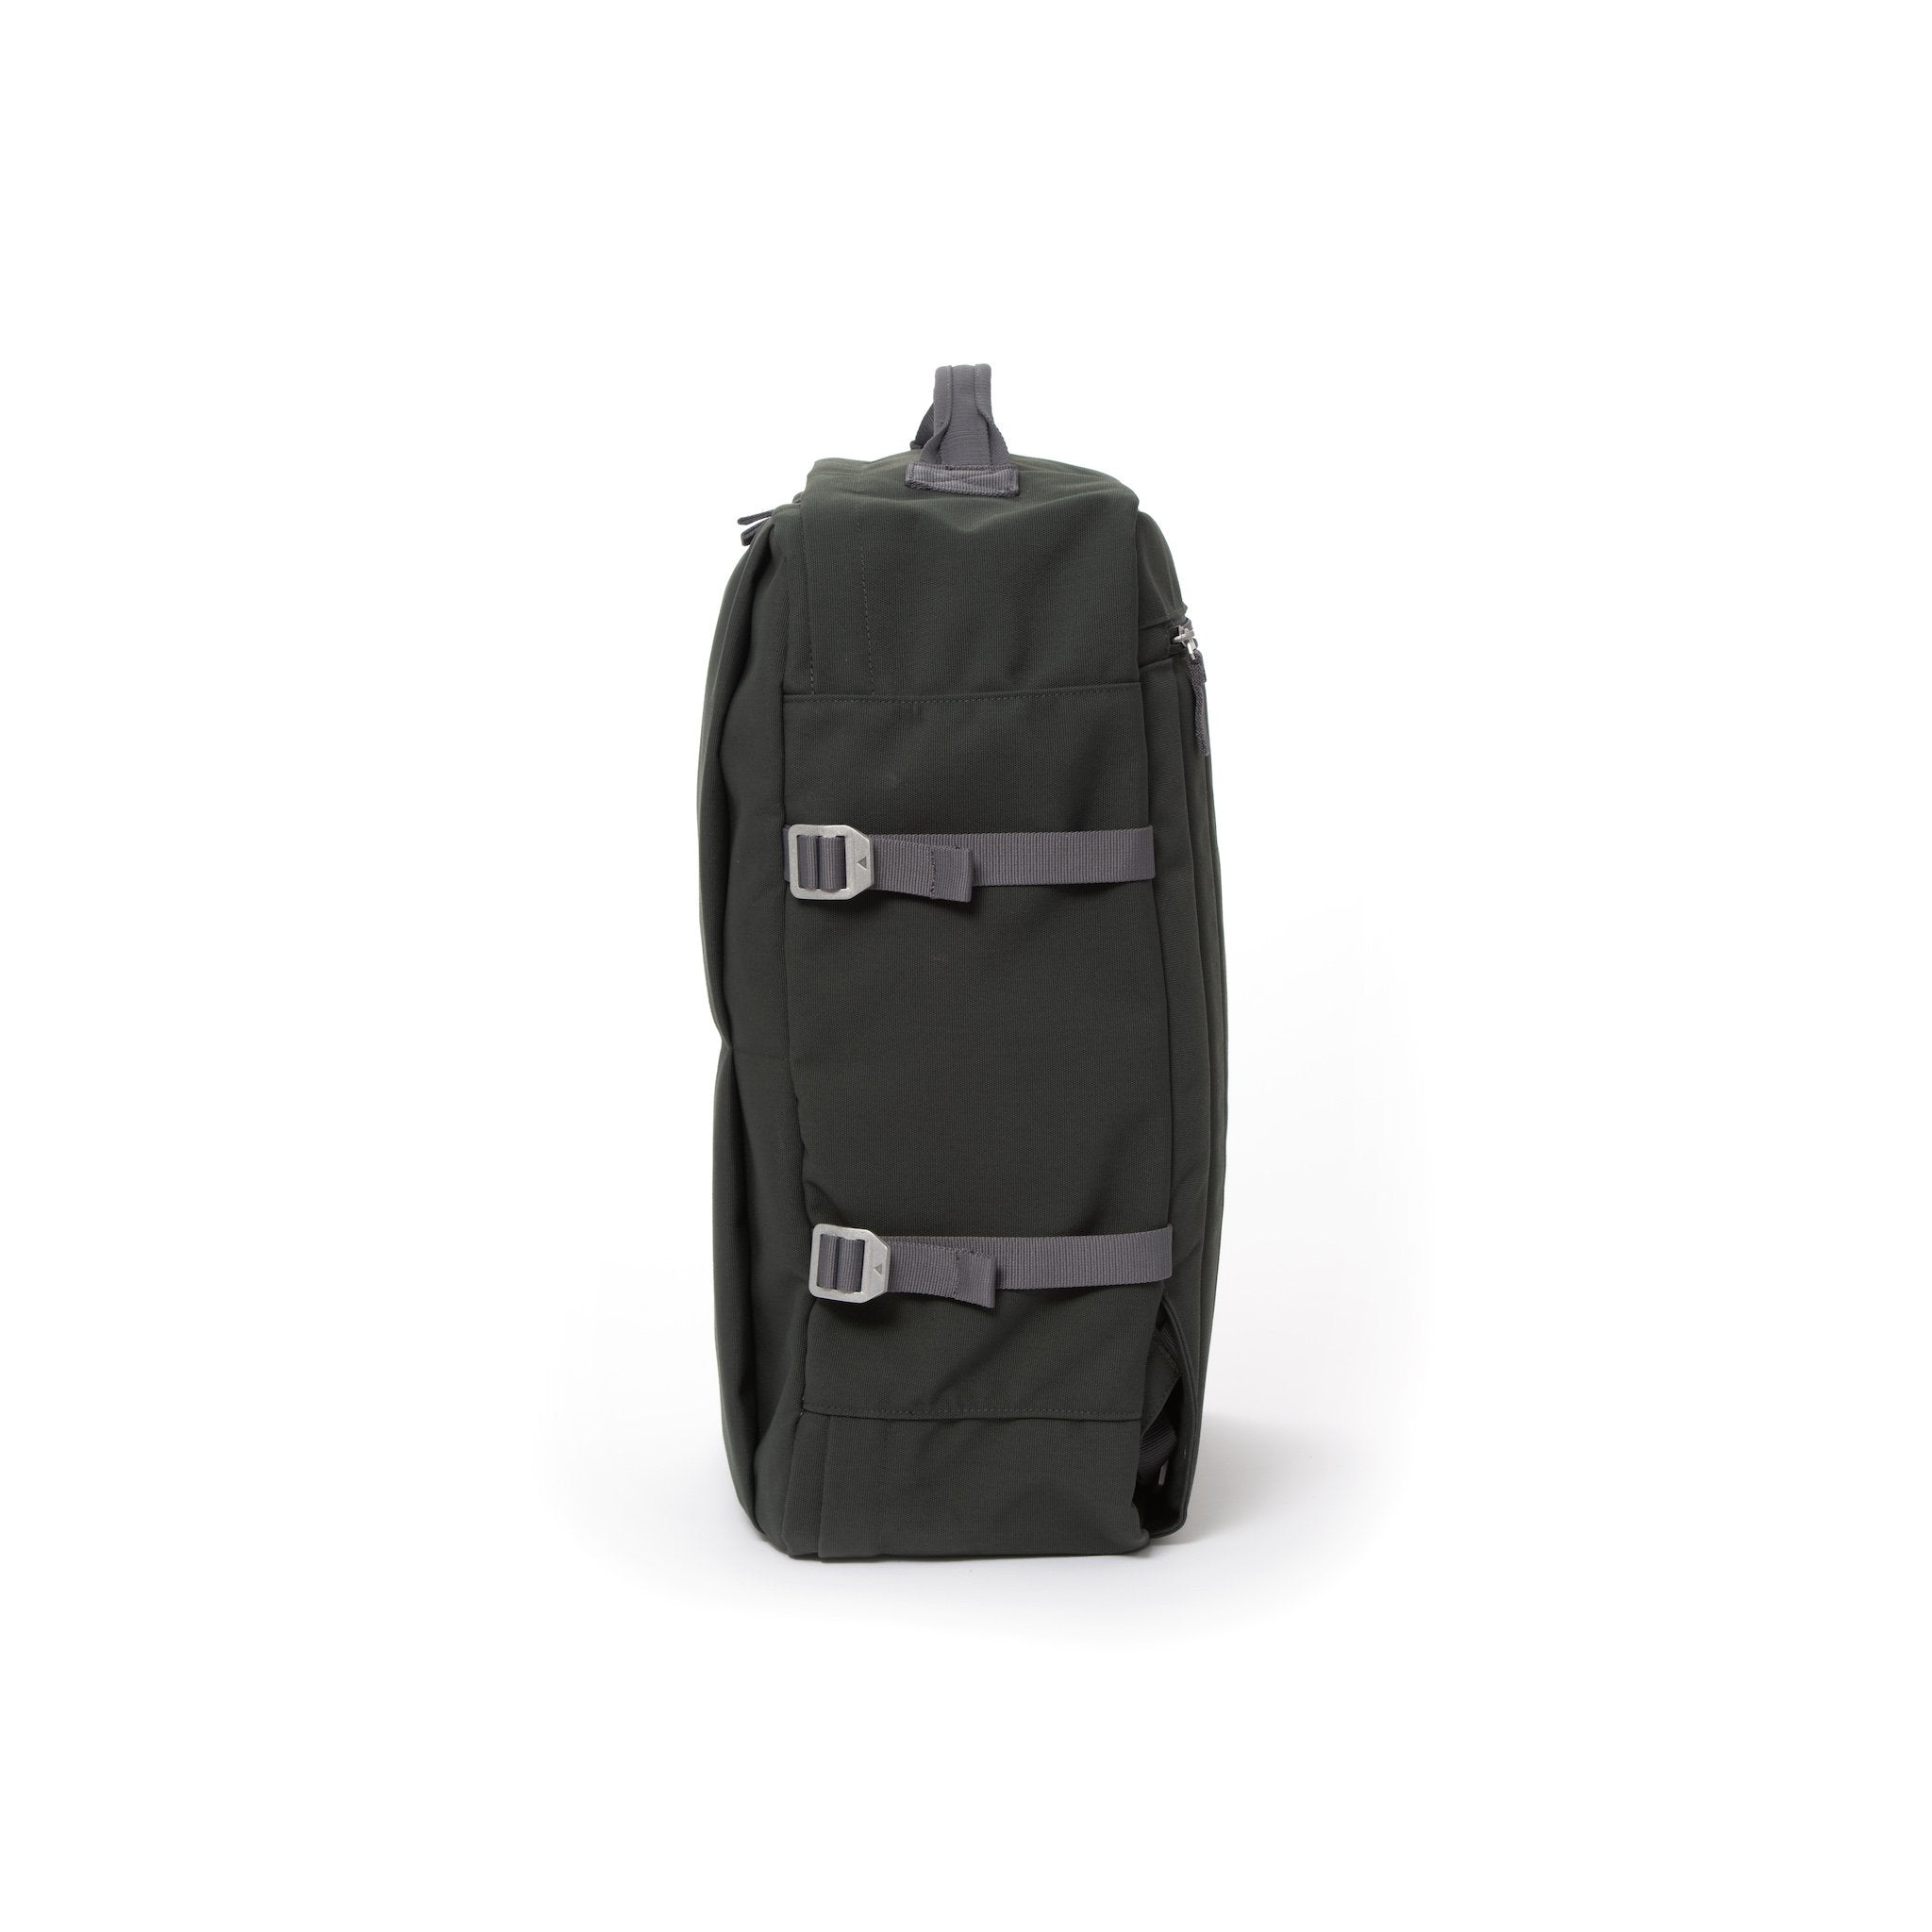 Grey waterproof canvas travel backpack with compression side straps.